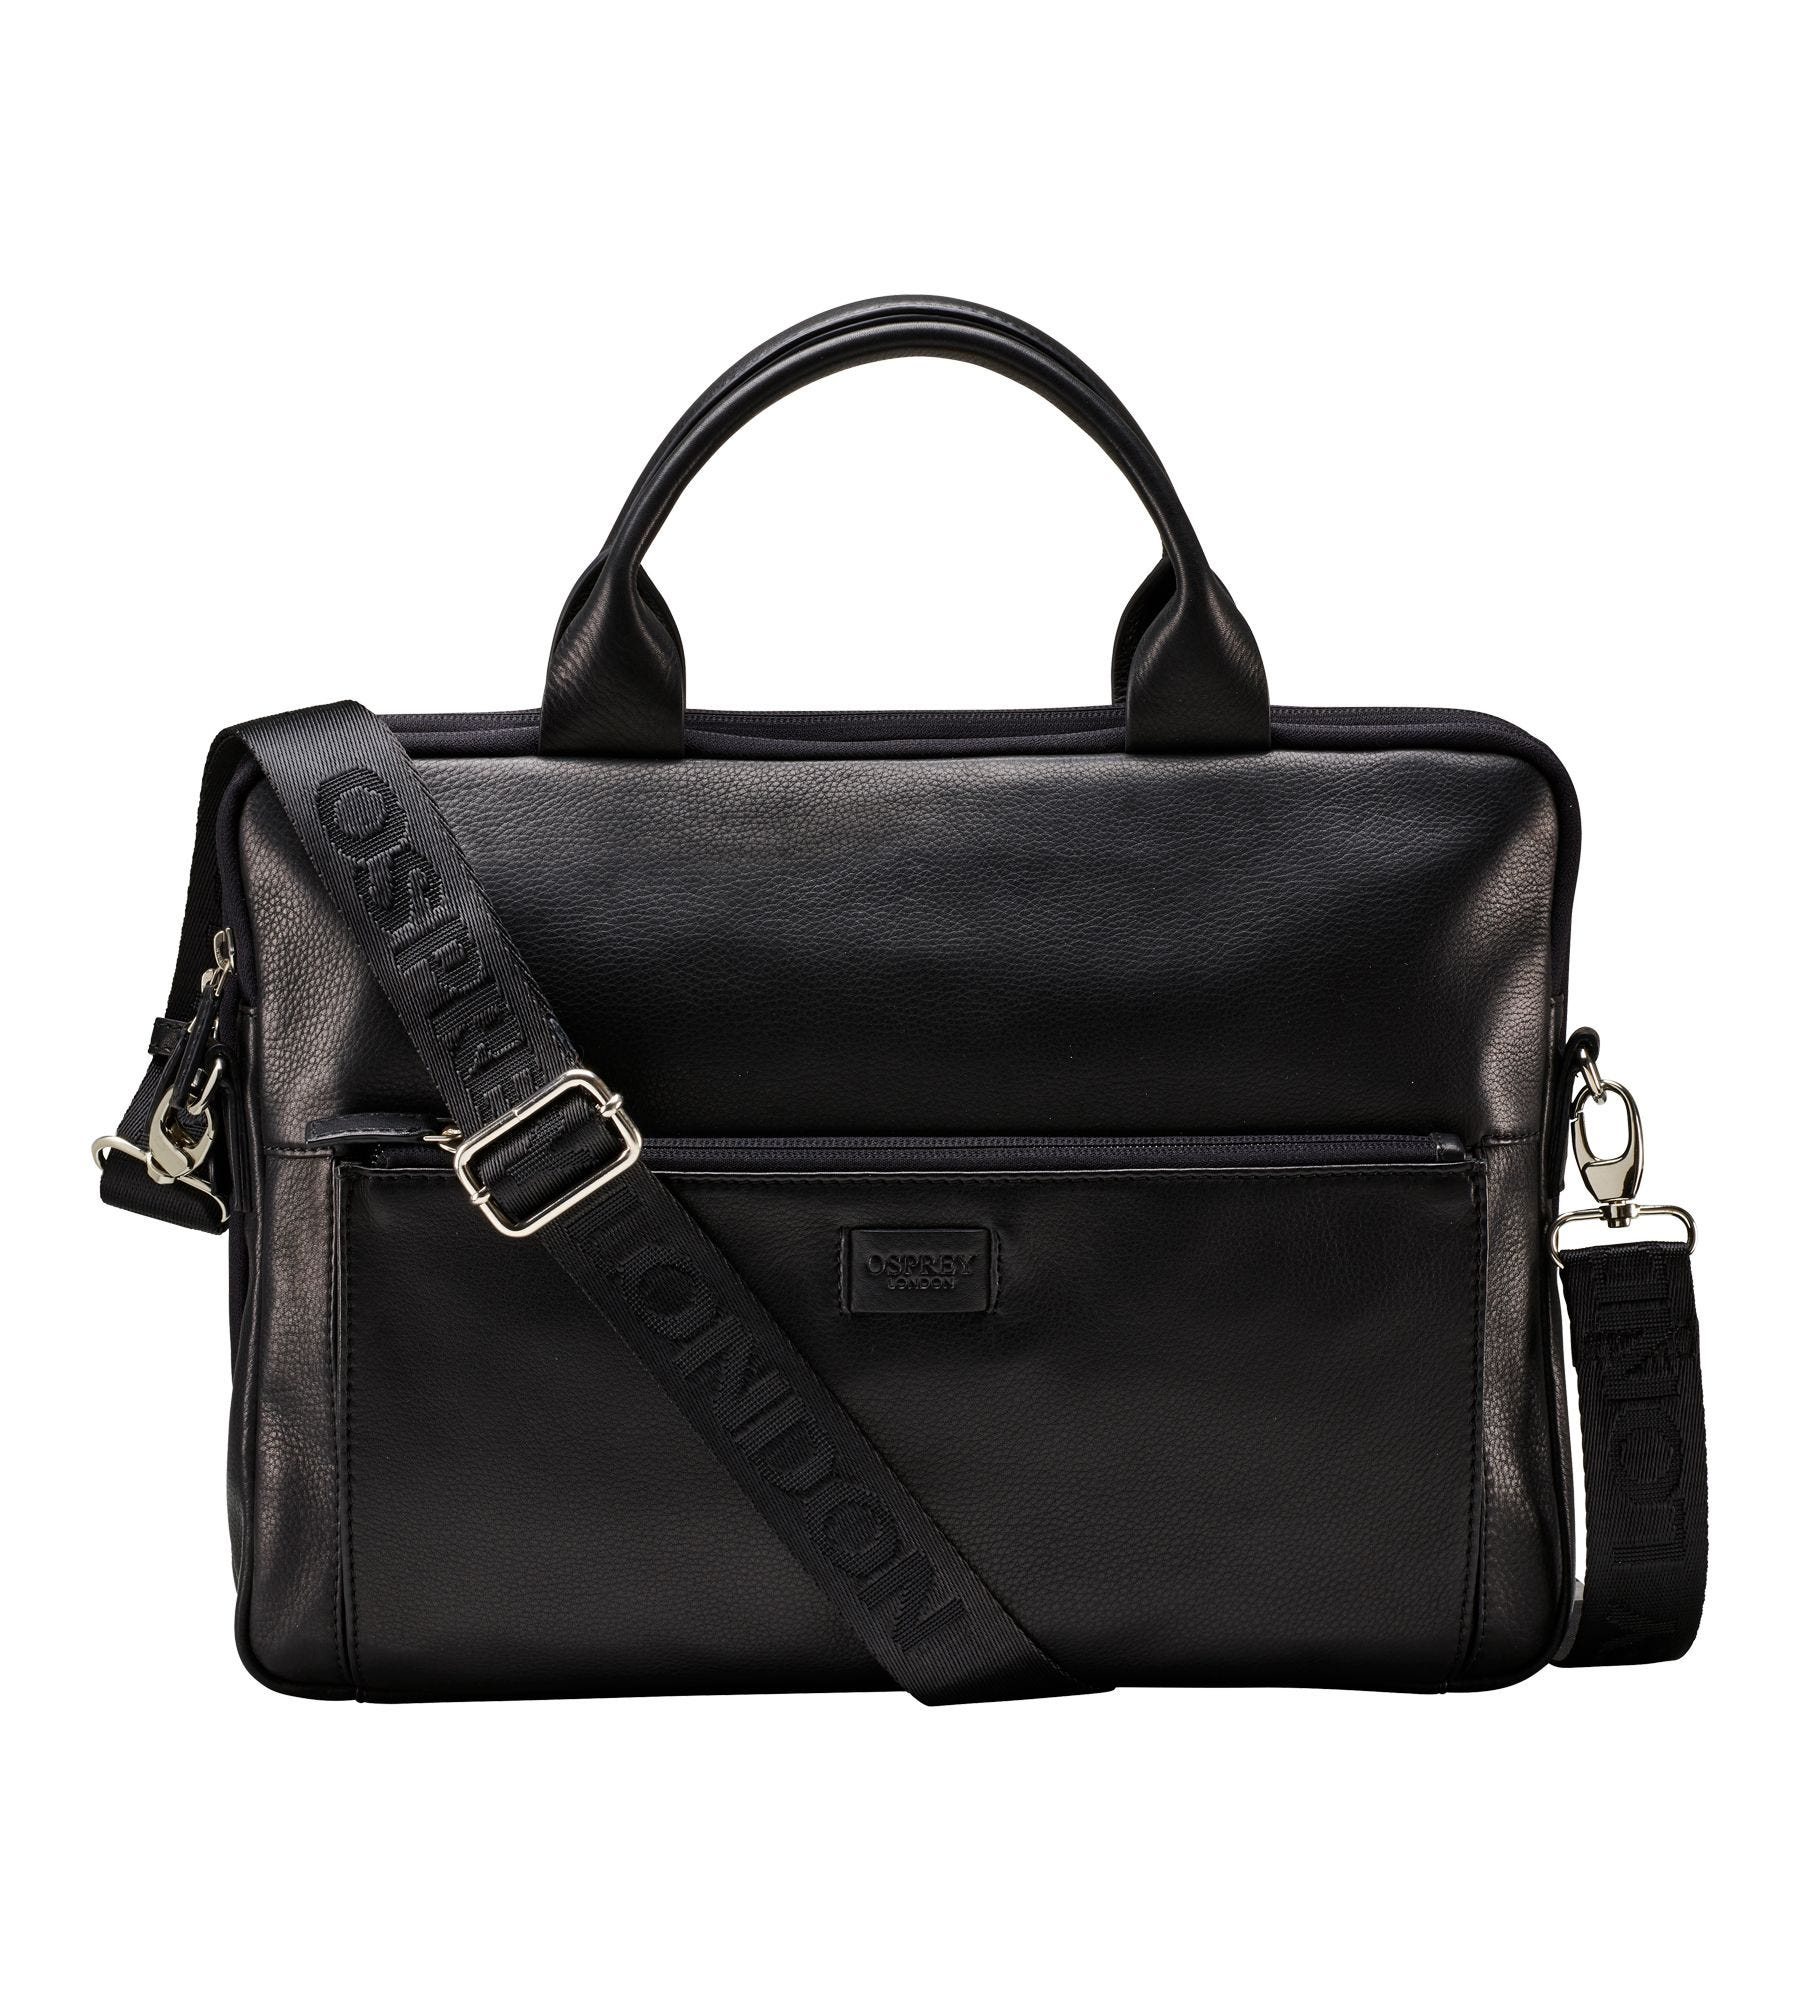 new release on wholesale 100% genuine The Baltimore Leather Laptop Bag